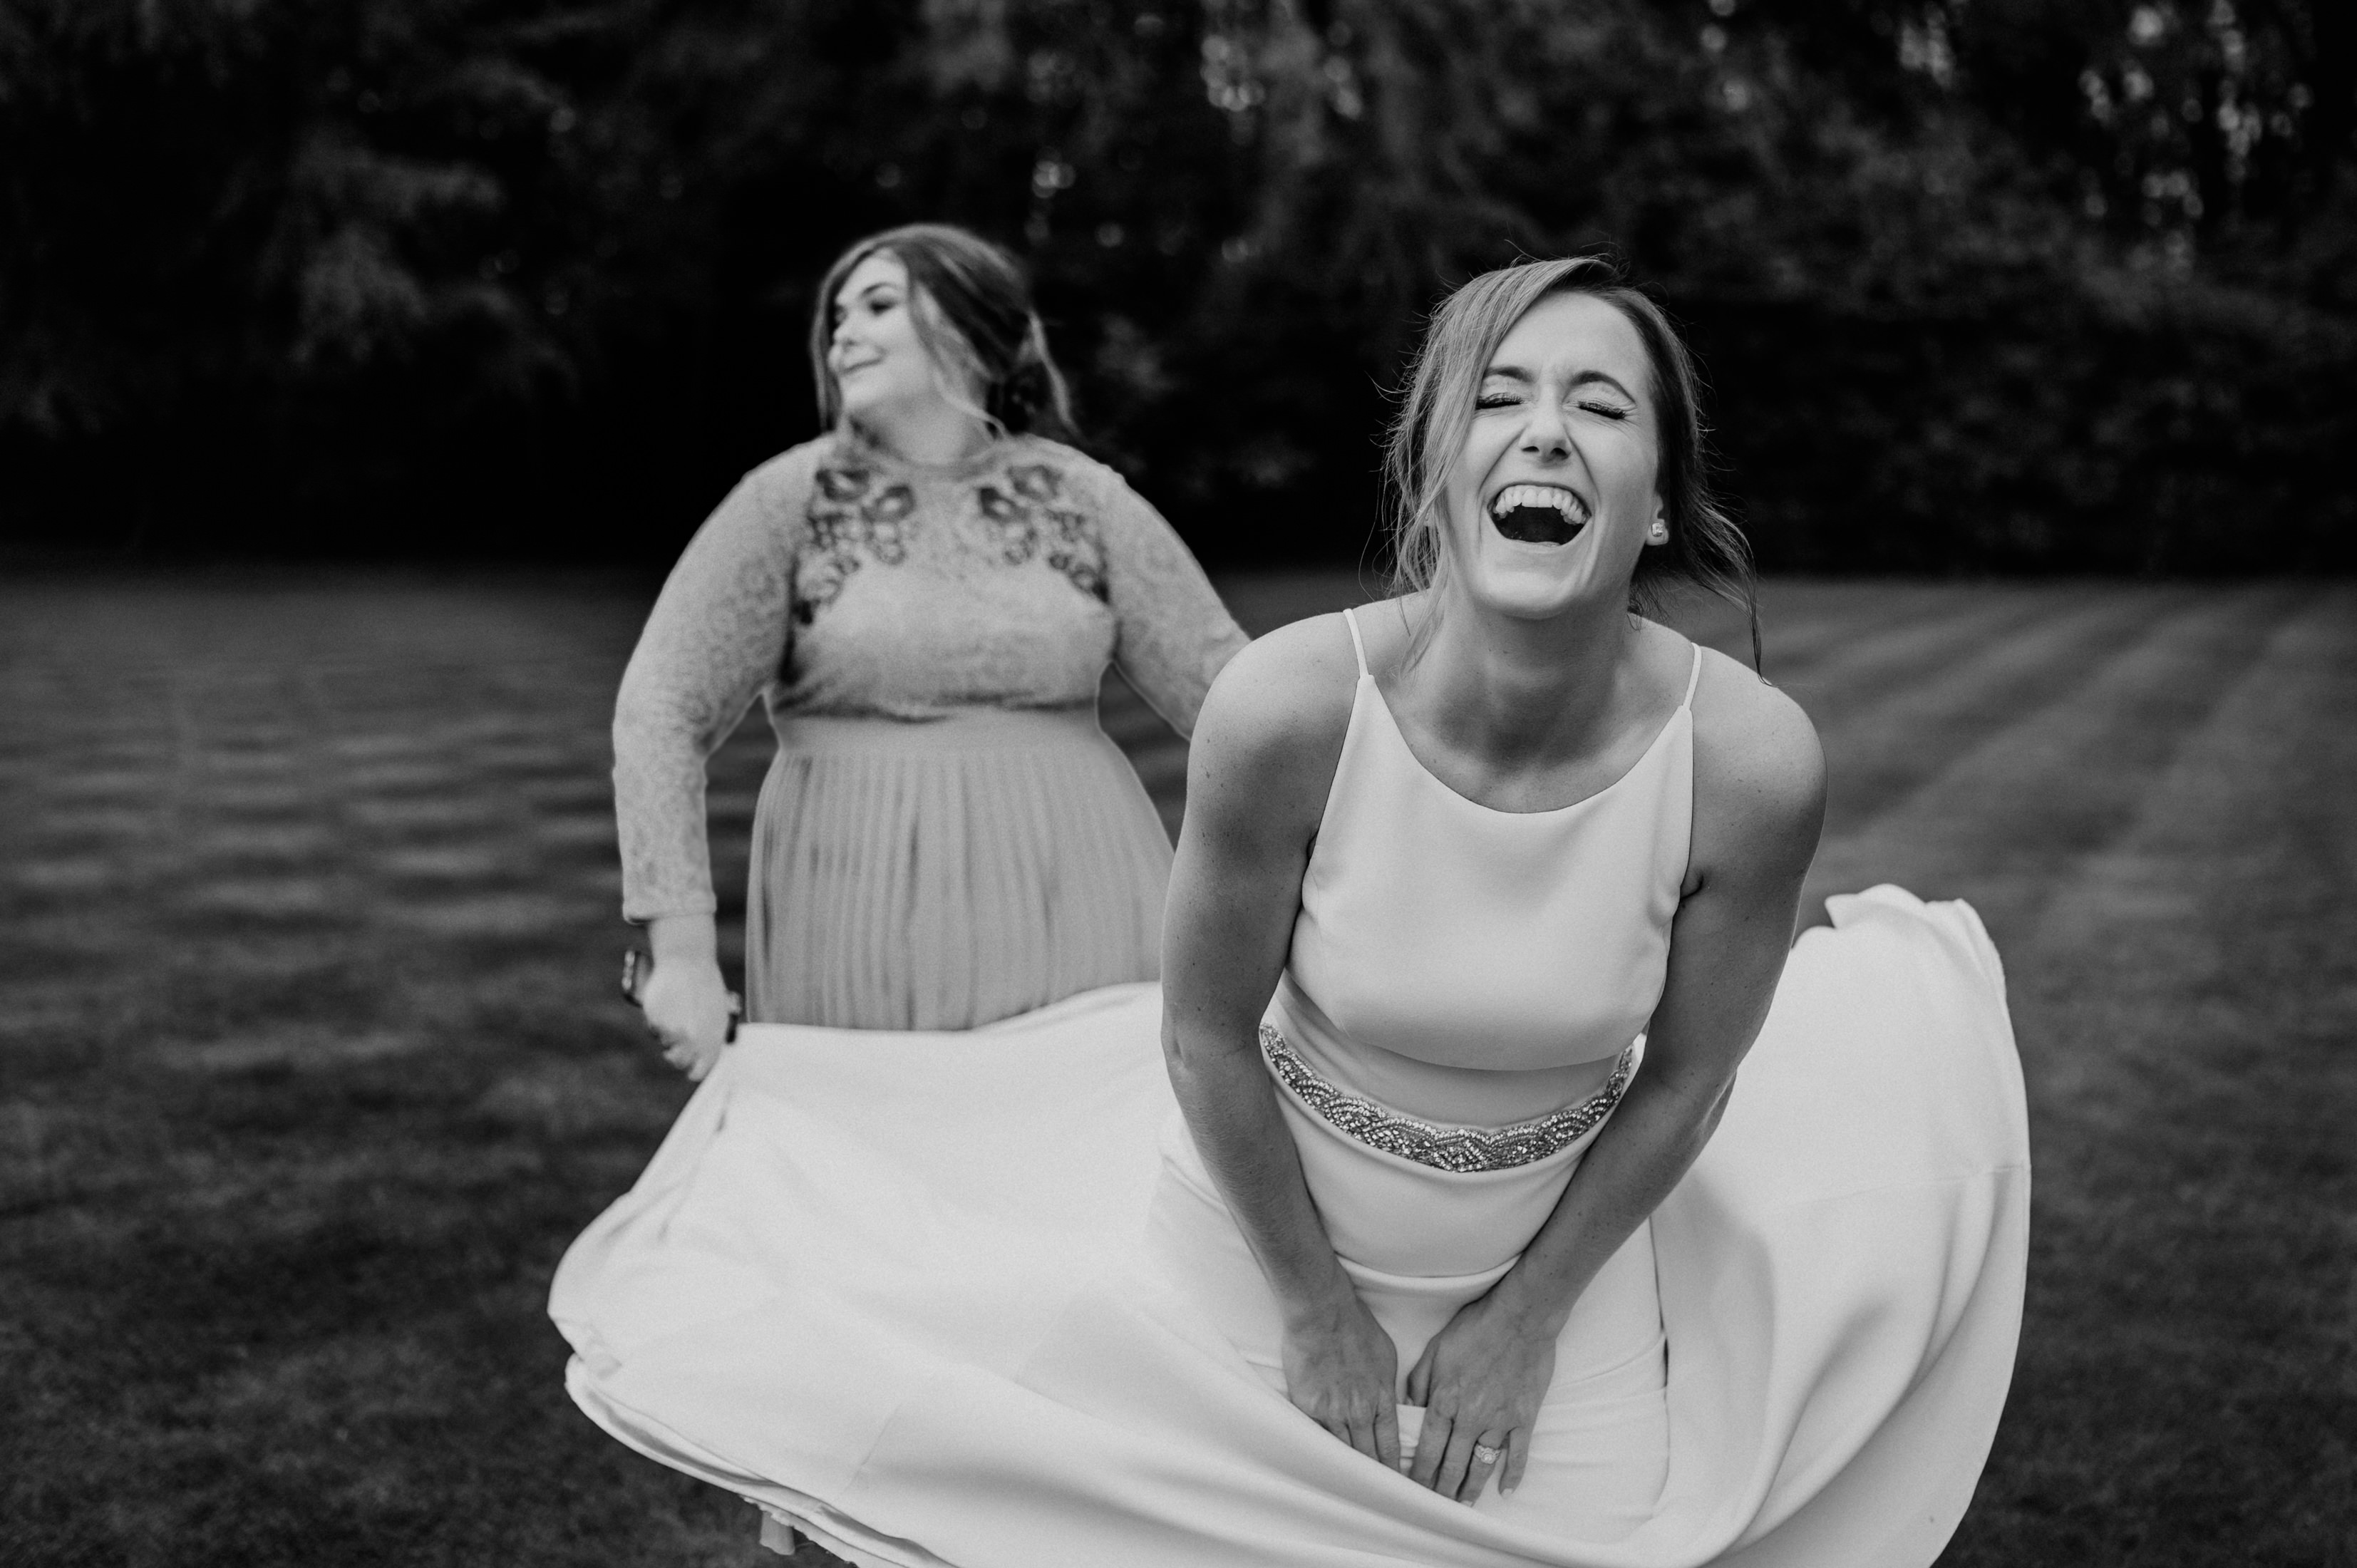 Bride and friend playing around in the garden - photo by John Gillooley